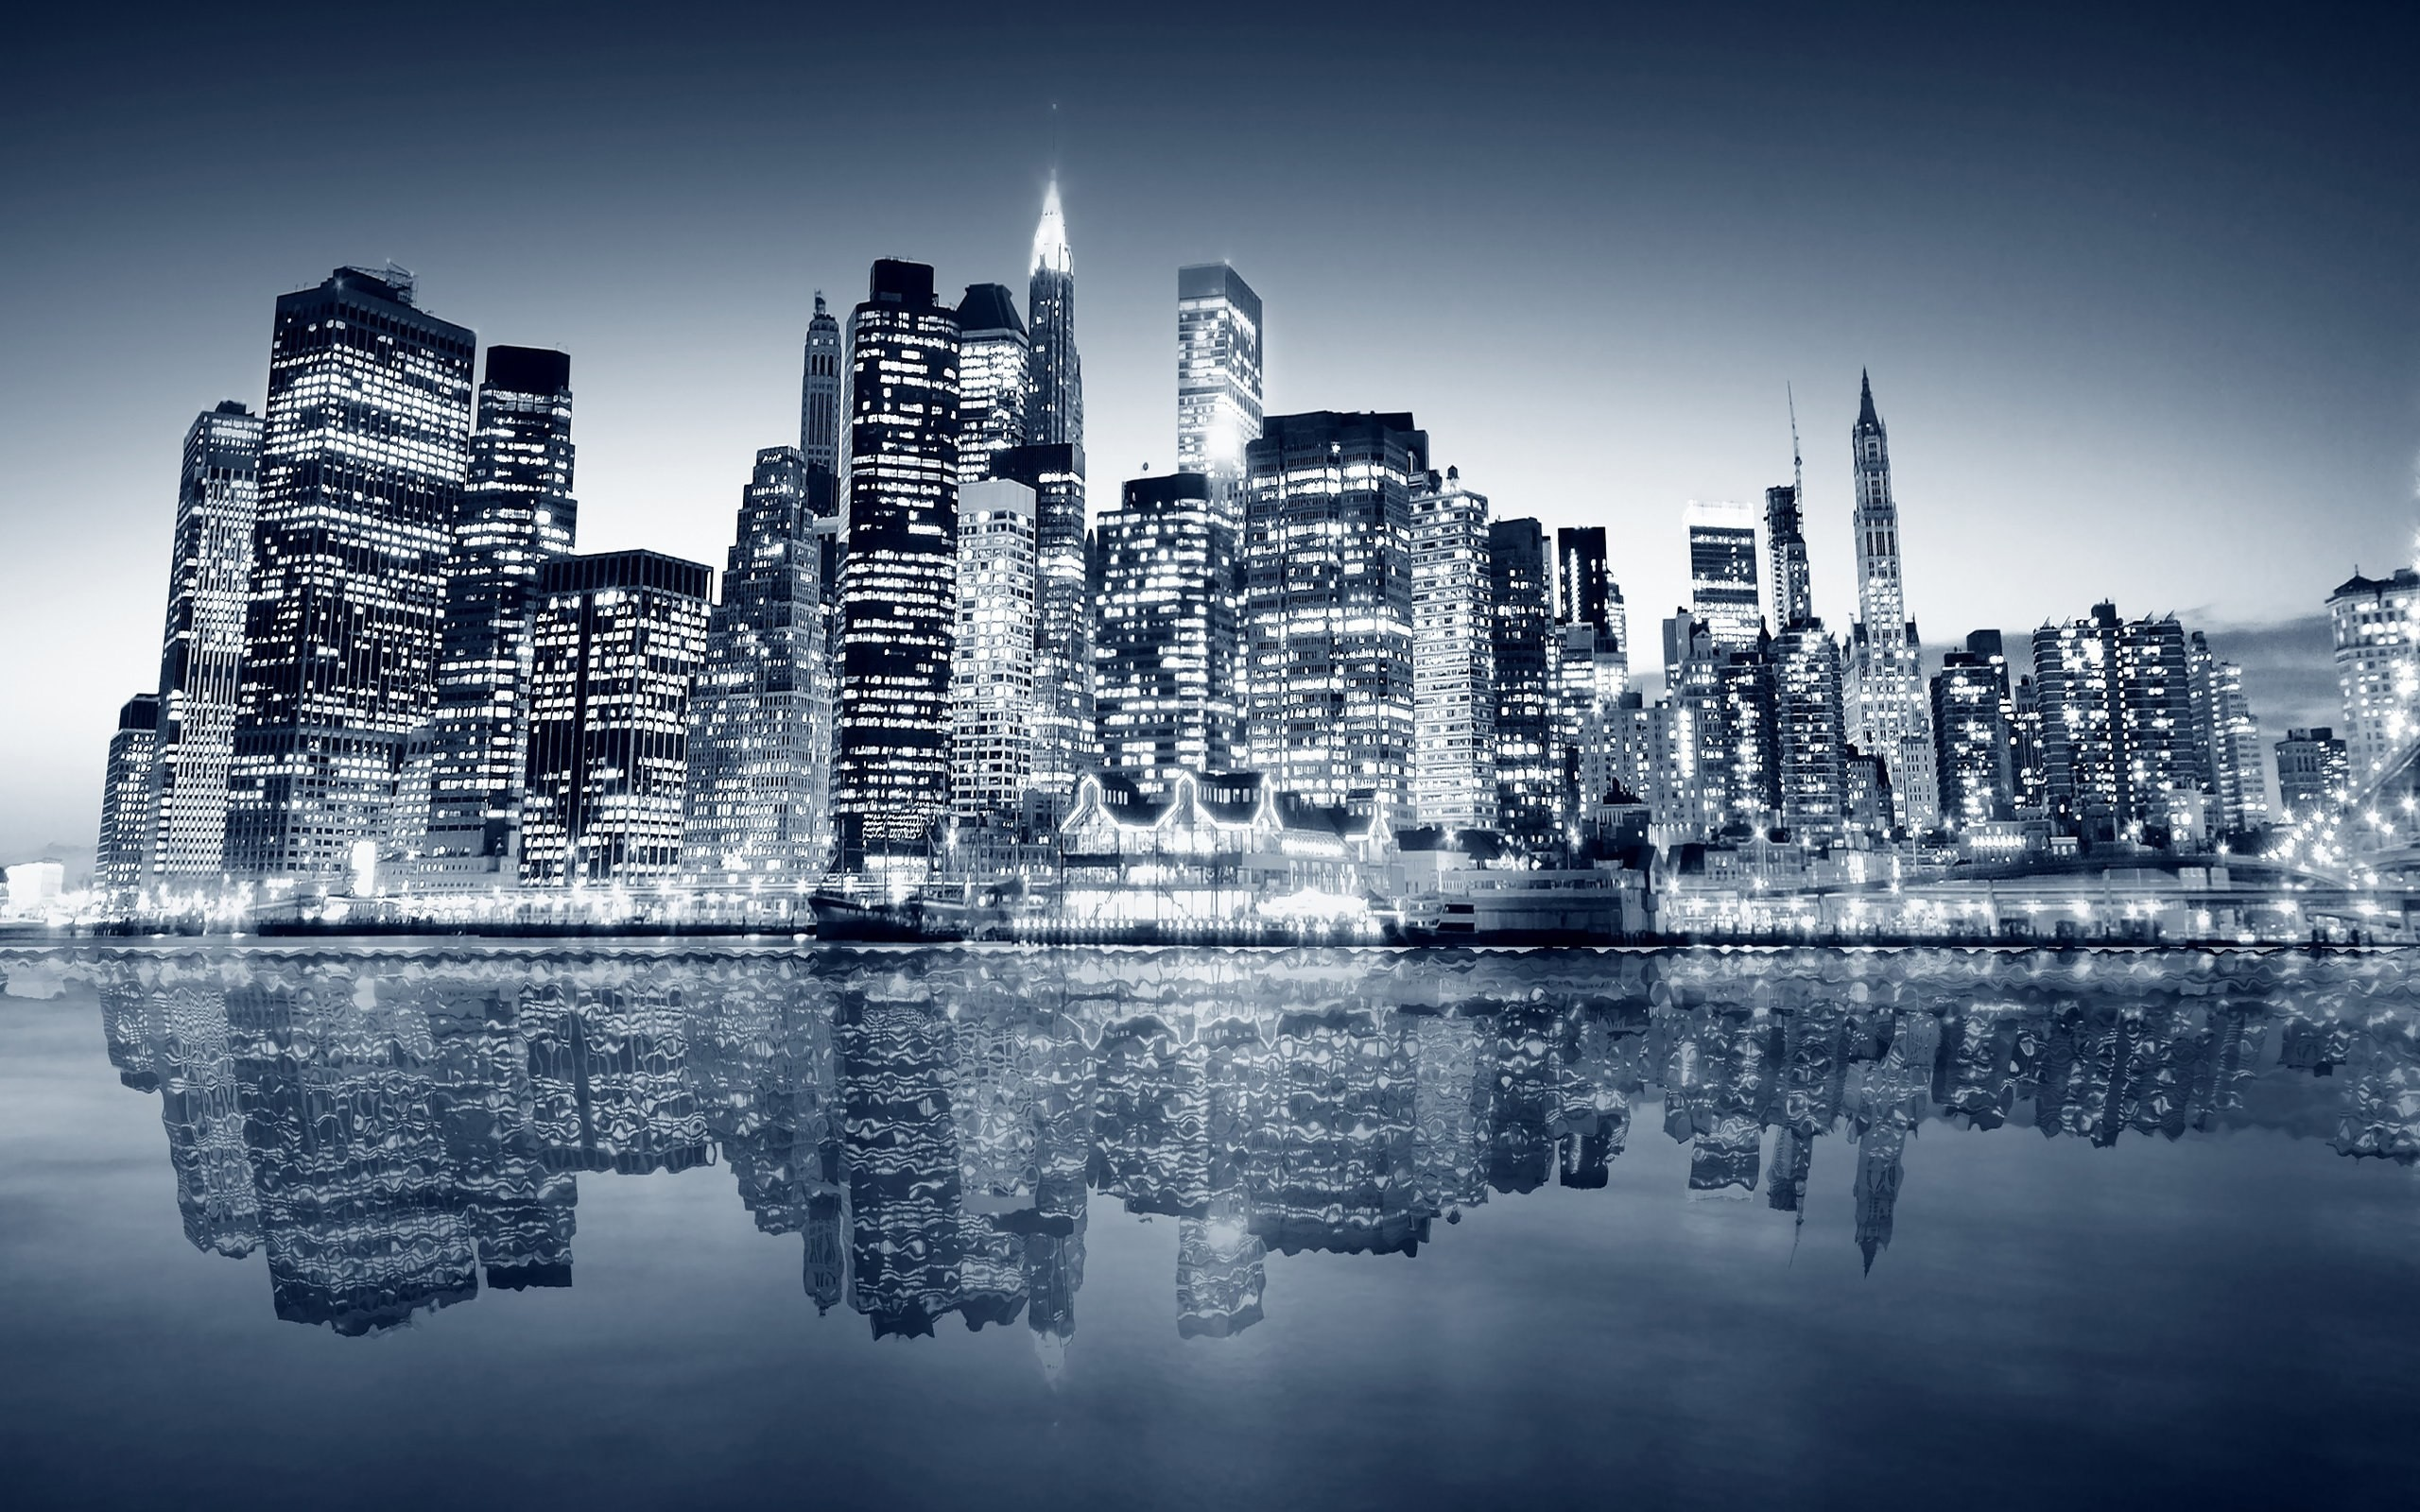 Black And White New York Skyline 9 Wallpaper HD hd backgrounds hd  screensavers hd wallpapers 1080p